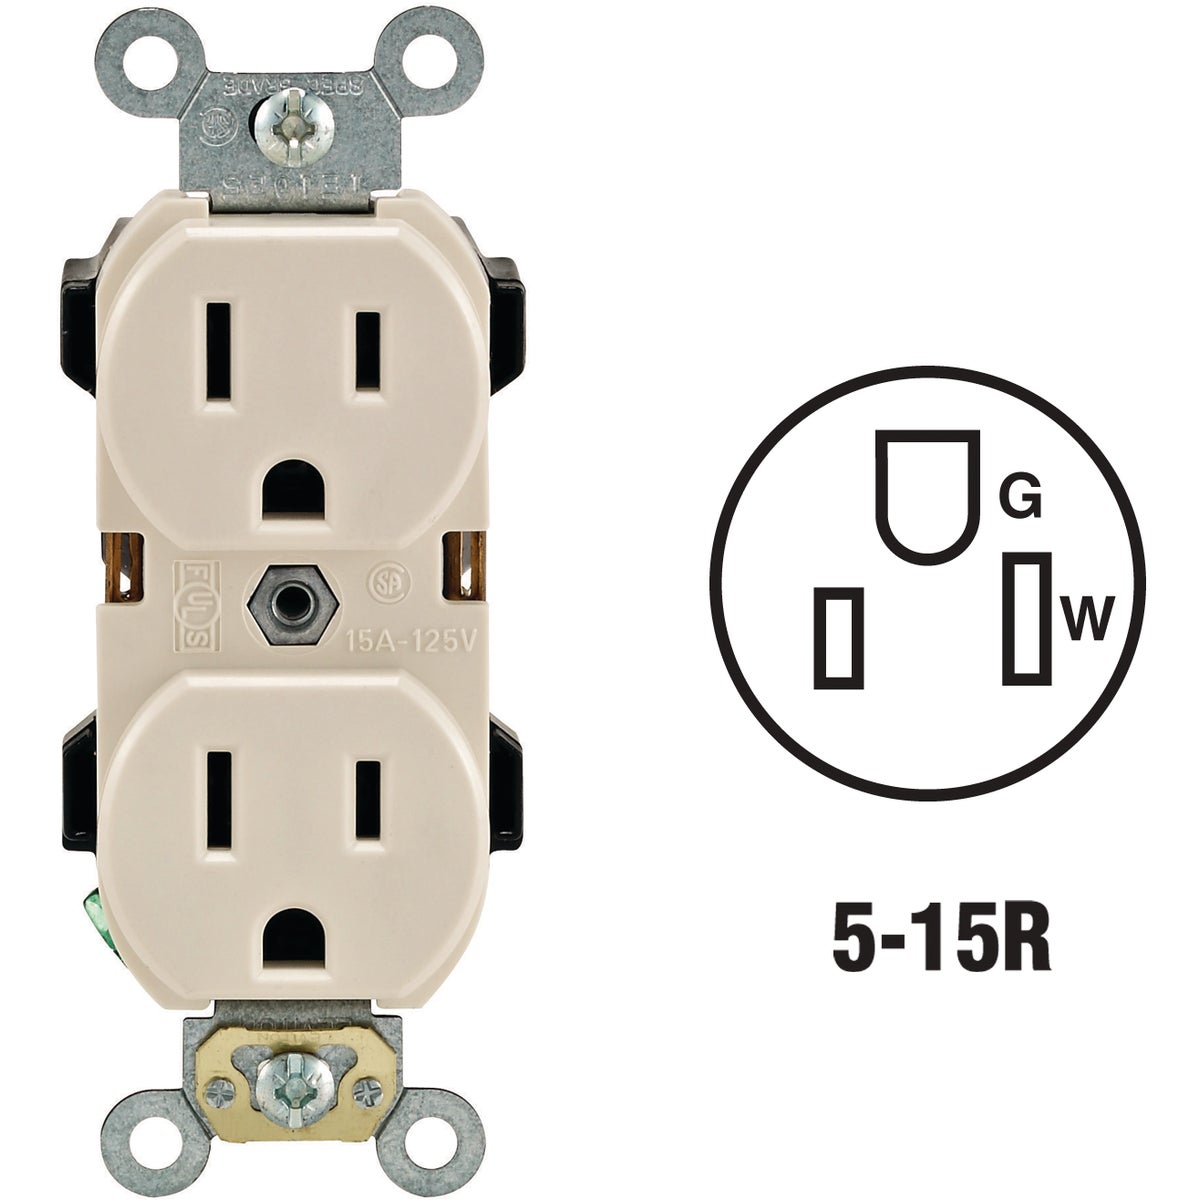 LT ALM DUPLEX OUTLET - R56-05252-OTS by Leviton Mfg Co